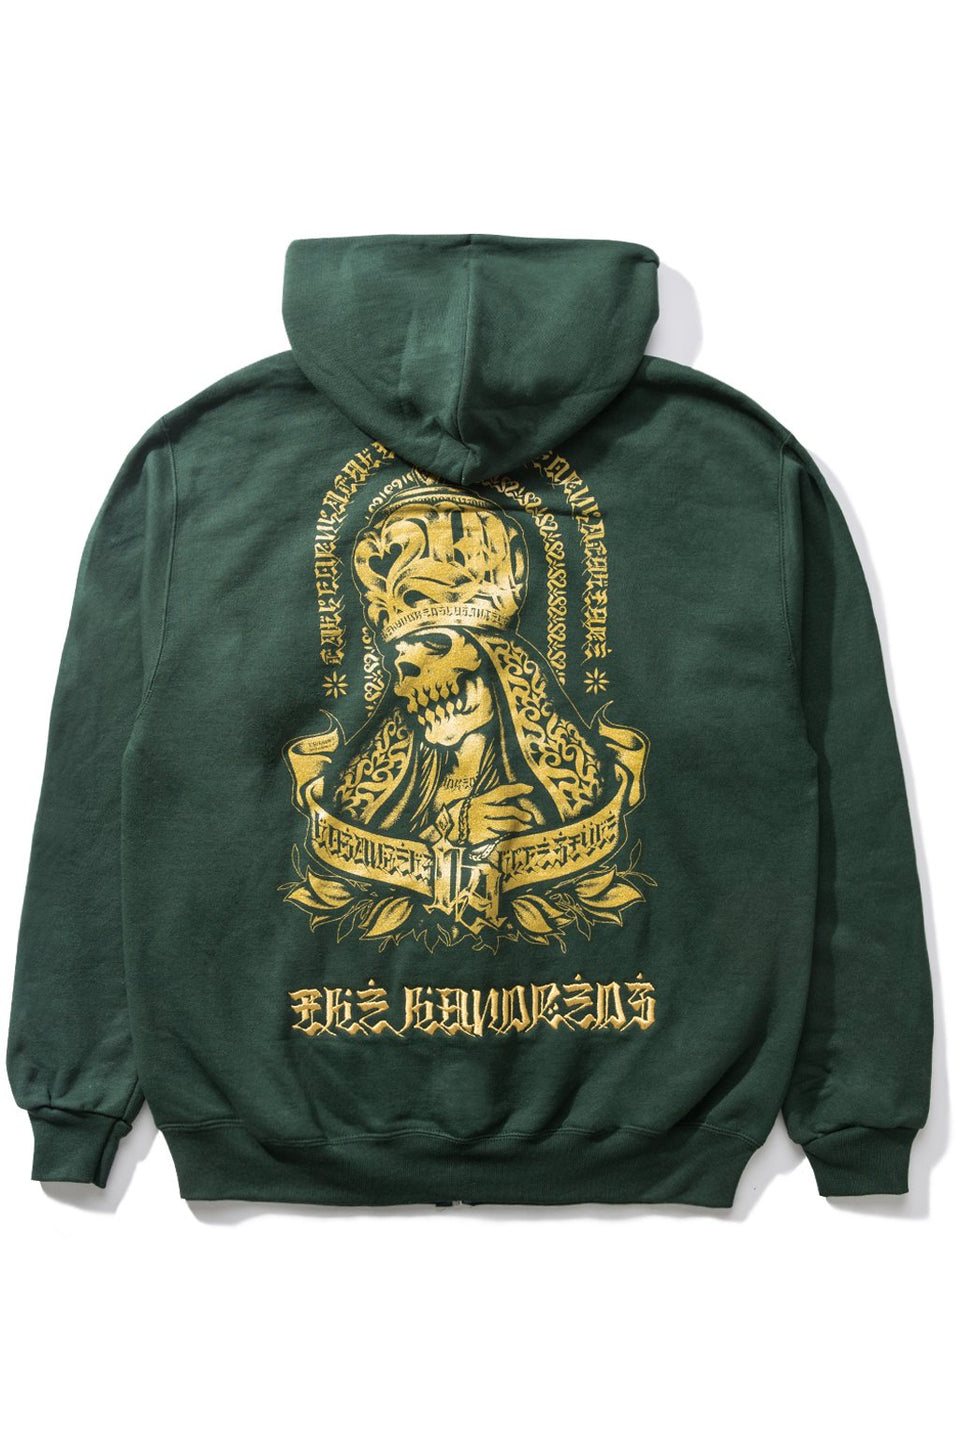 Usugrow Culture Champion Zip-Up Hoodie